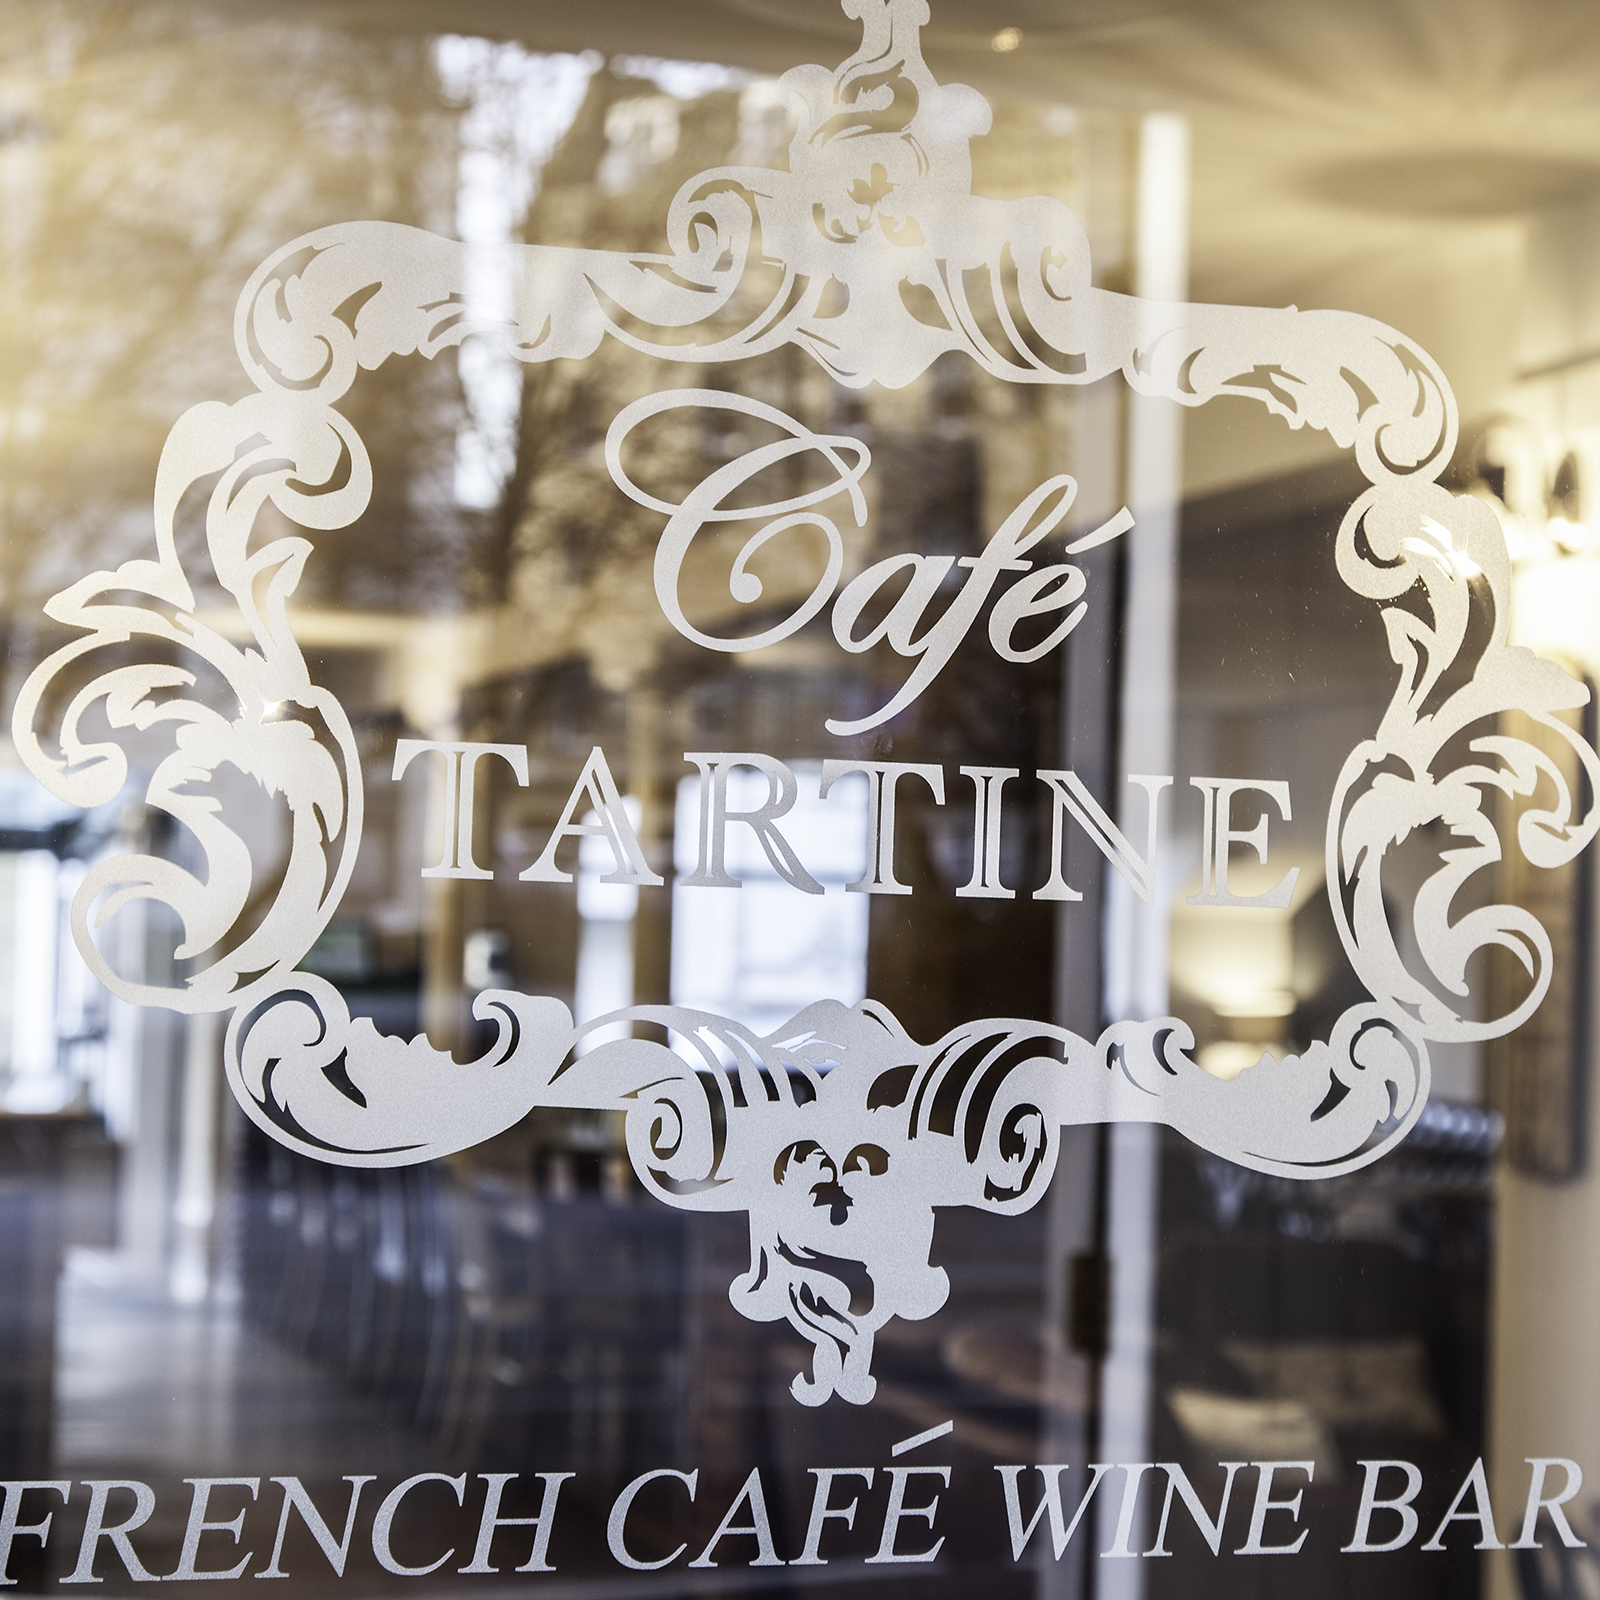 Cafe Tartine Window Signage